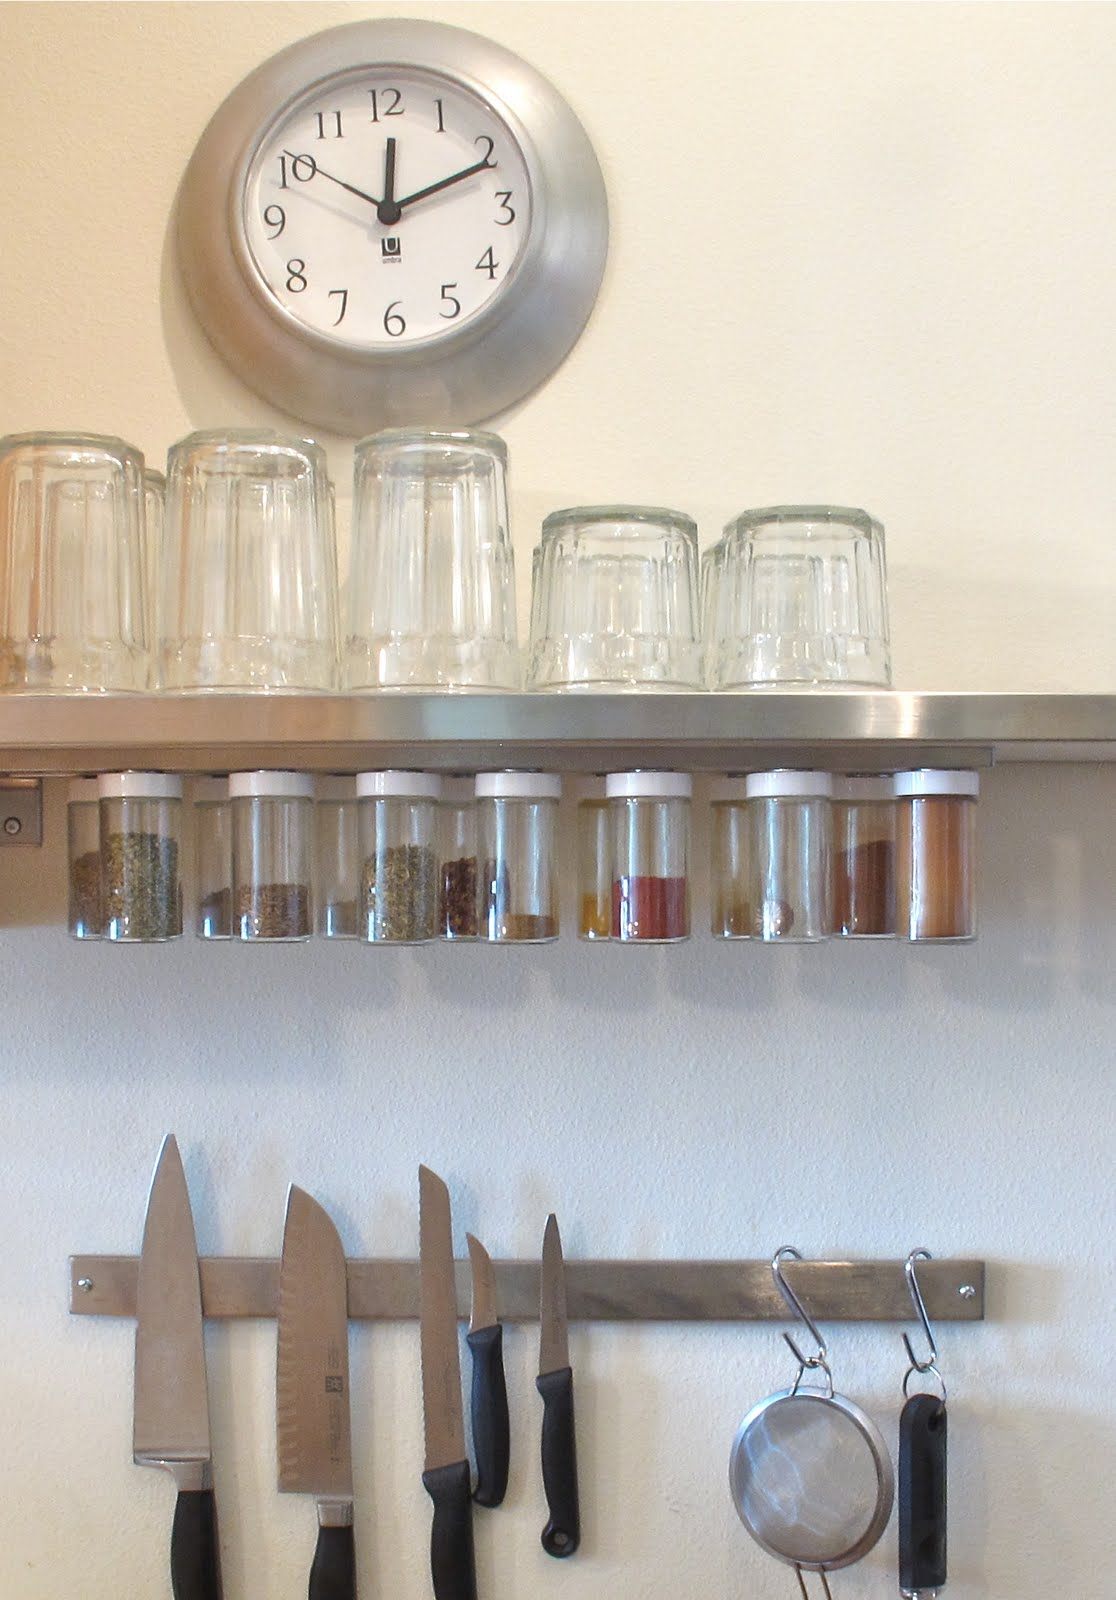 Blukatkraft Diy Hanging Magnetic Spice Rack Storage